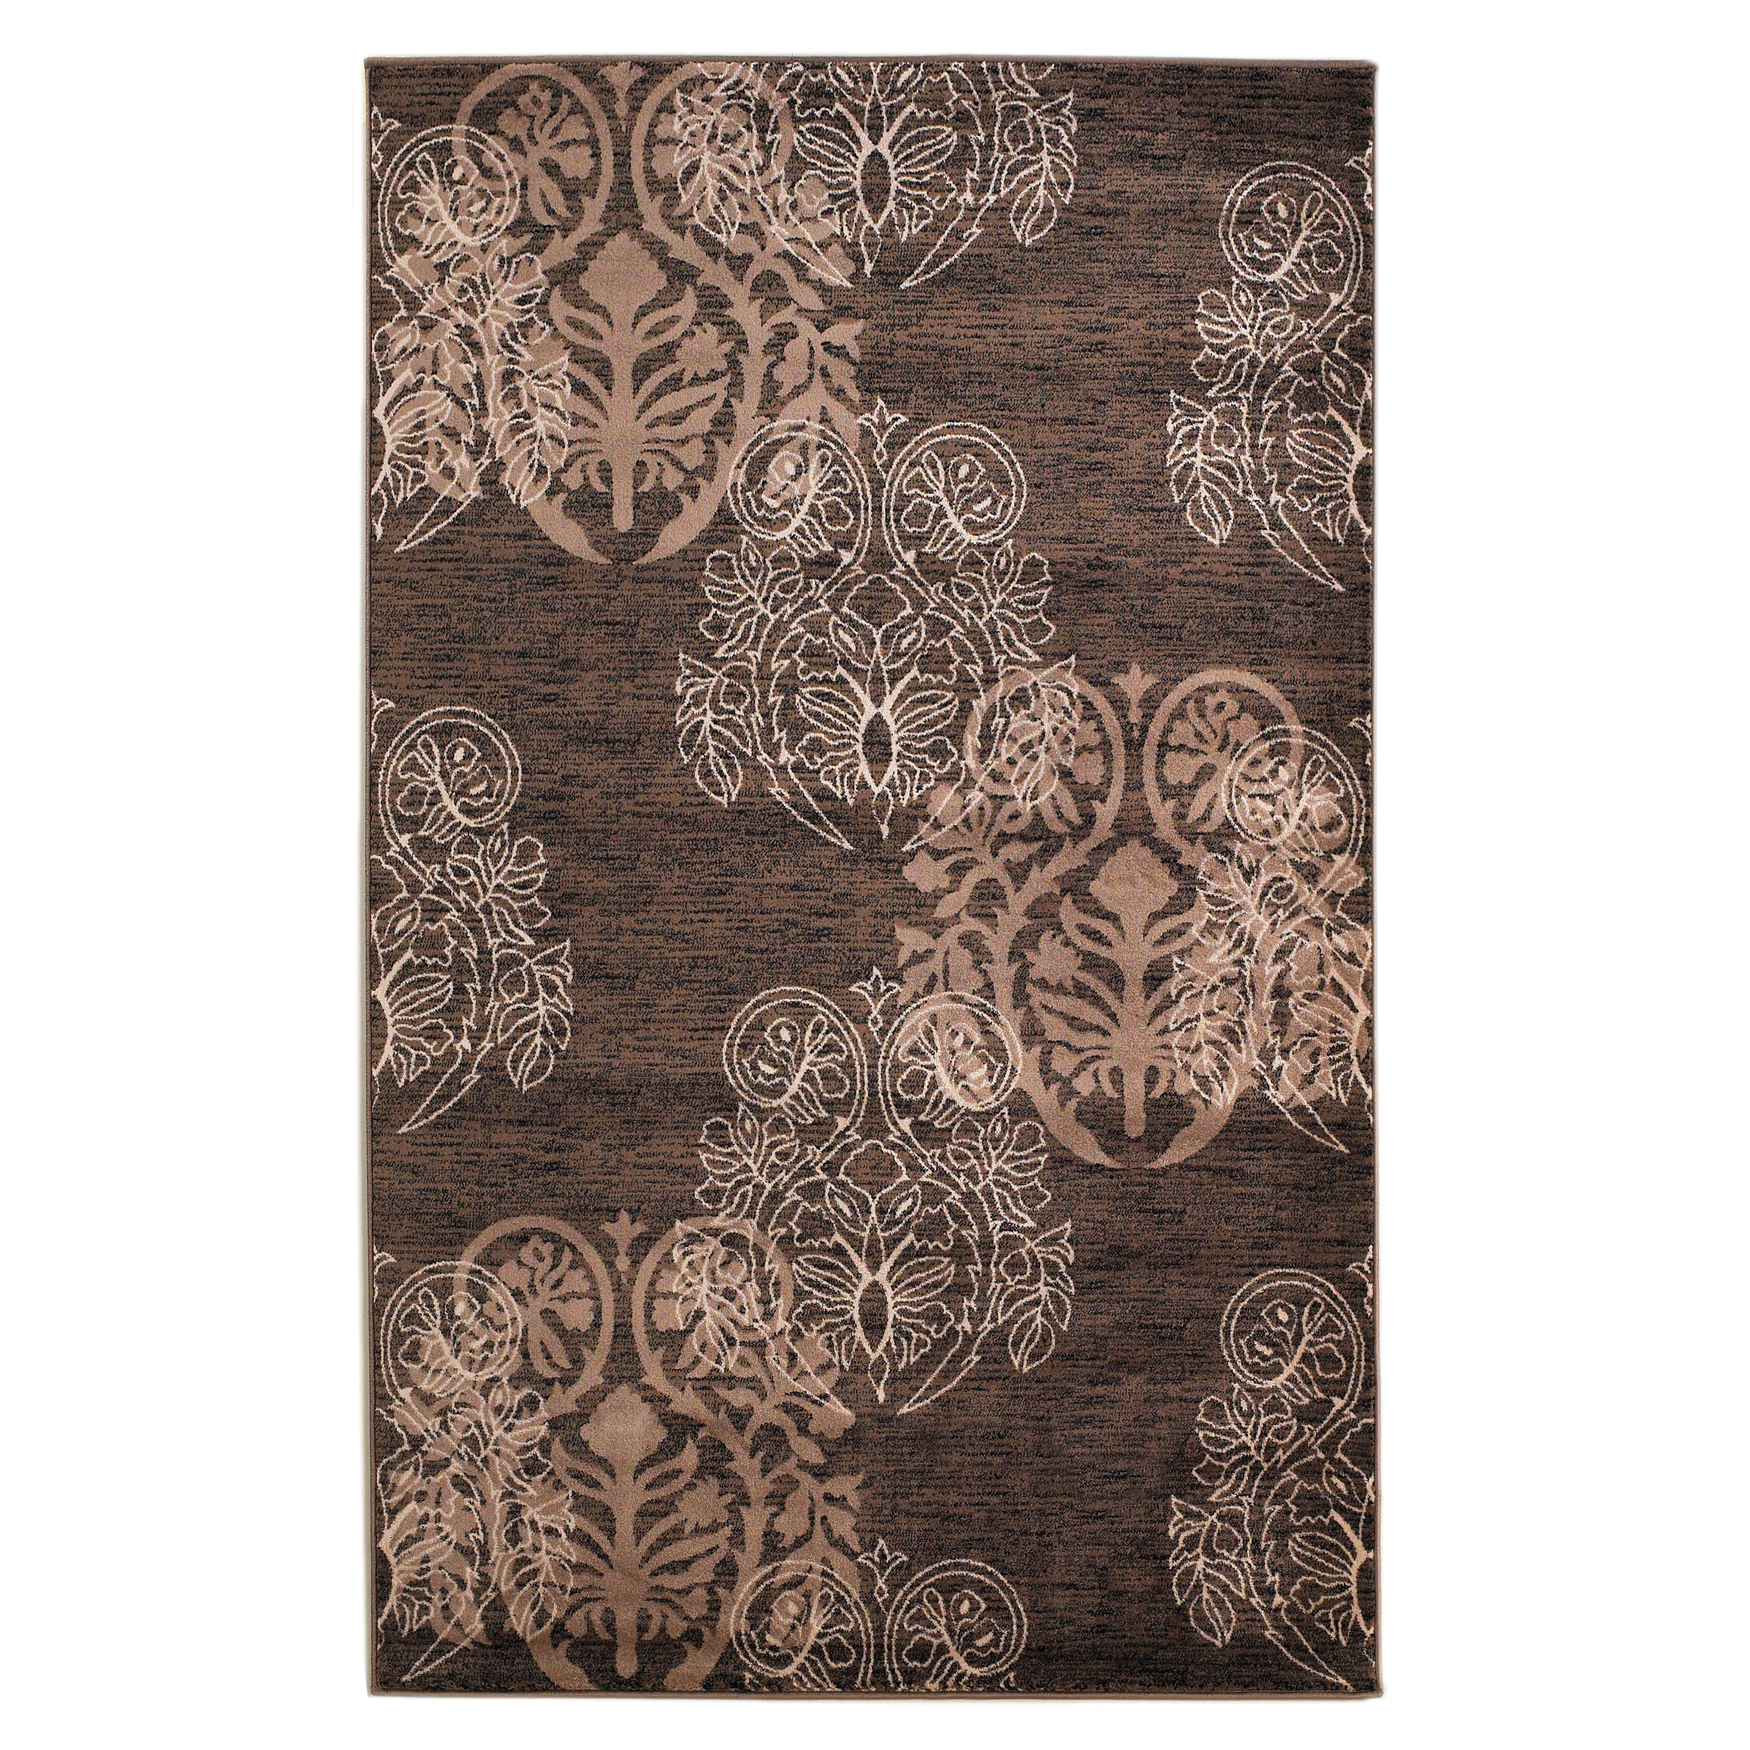 Milan Brown/Beige 8'X10' Area Rug, BROWN BEIGE